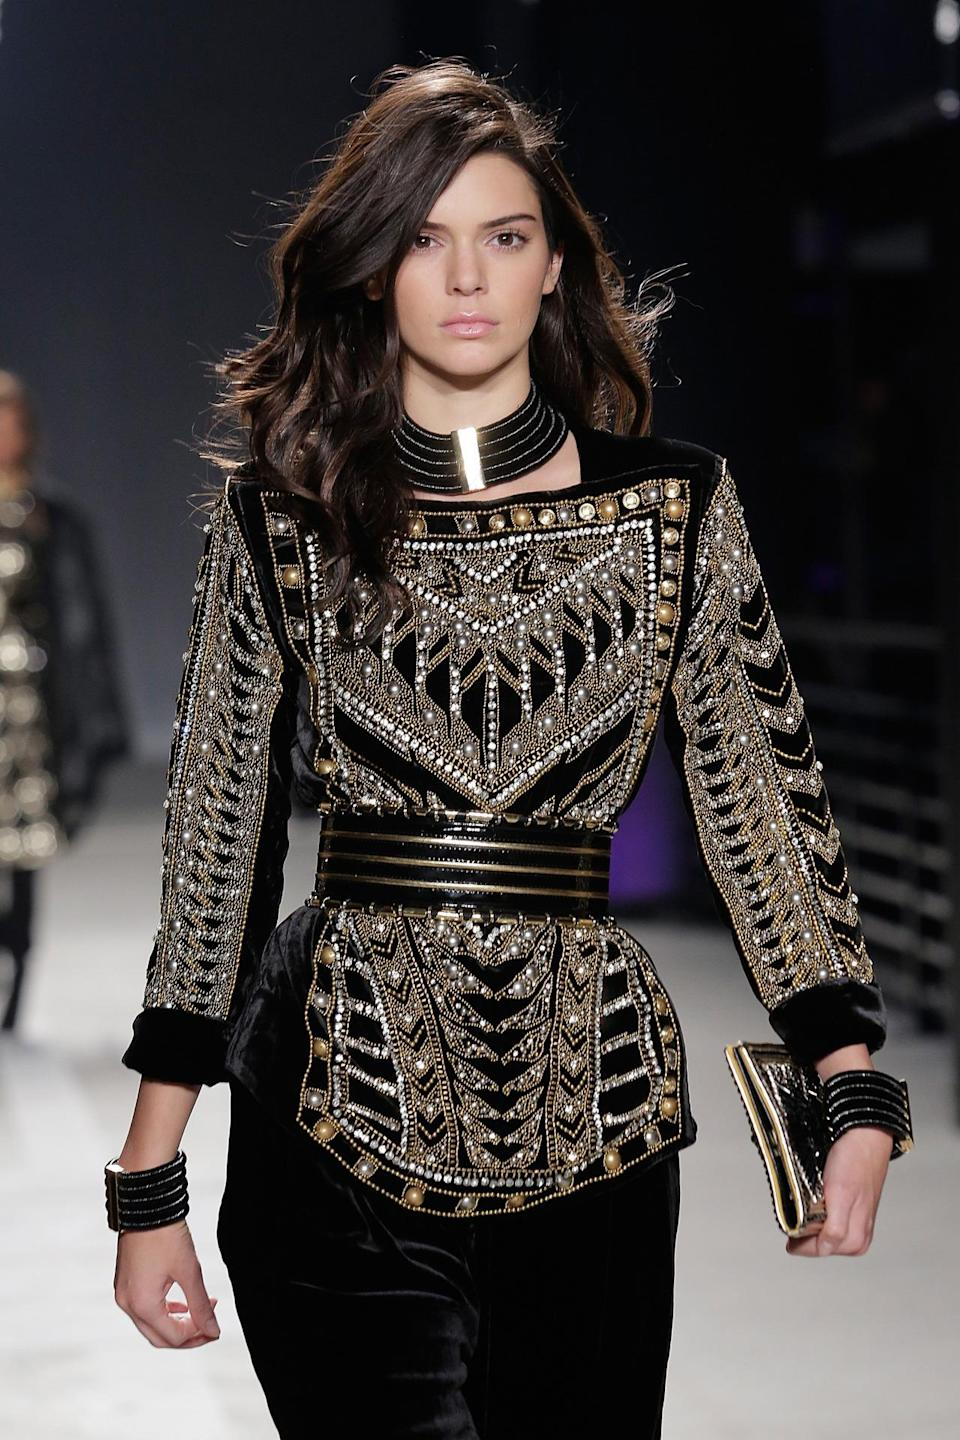 <p>Walking the runway at Balmain x H&M, Jenner looks like a rock 'n' roll legend with voluminous medium-length waves and pink lip gloss. <i>(Photo: Getty Images)</i><br></p>